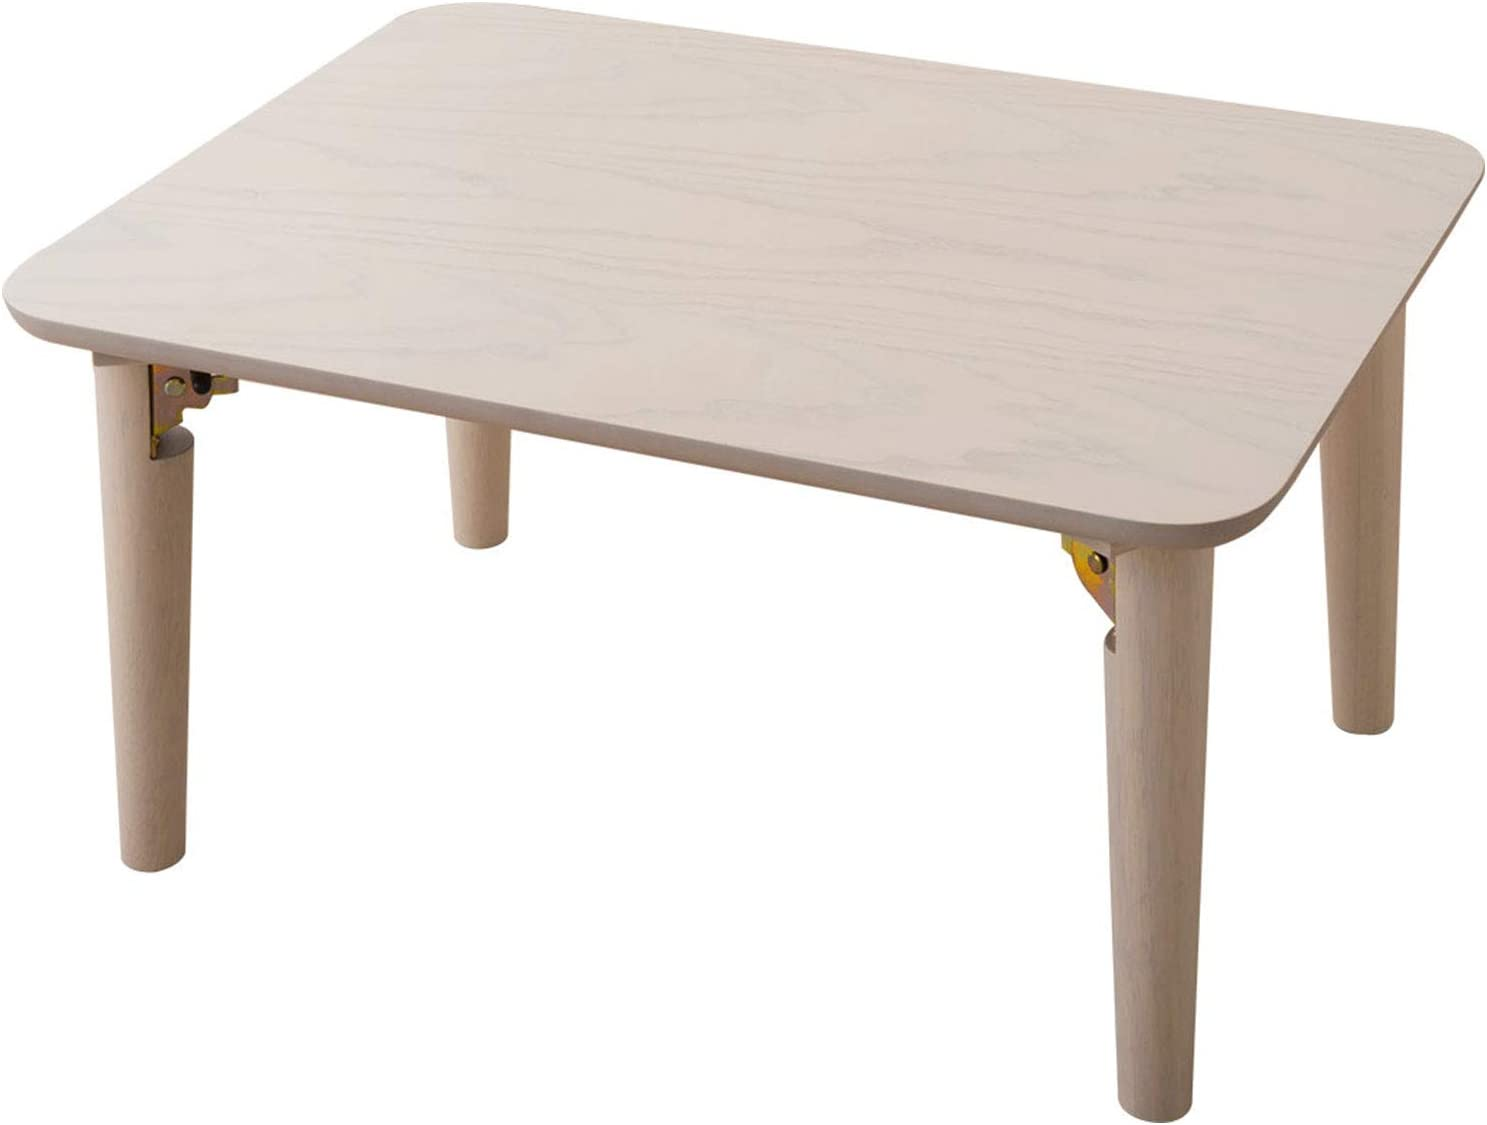 EMOOR Wooden Folding Coffee Table, Rectangle (Small), White